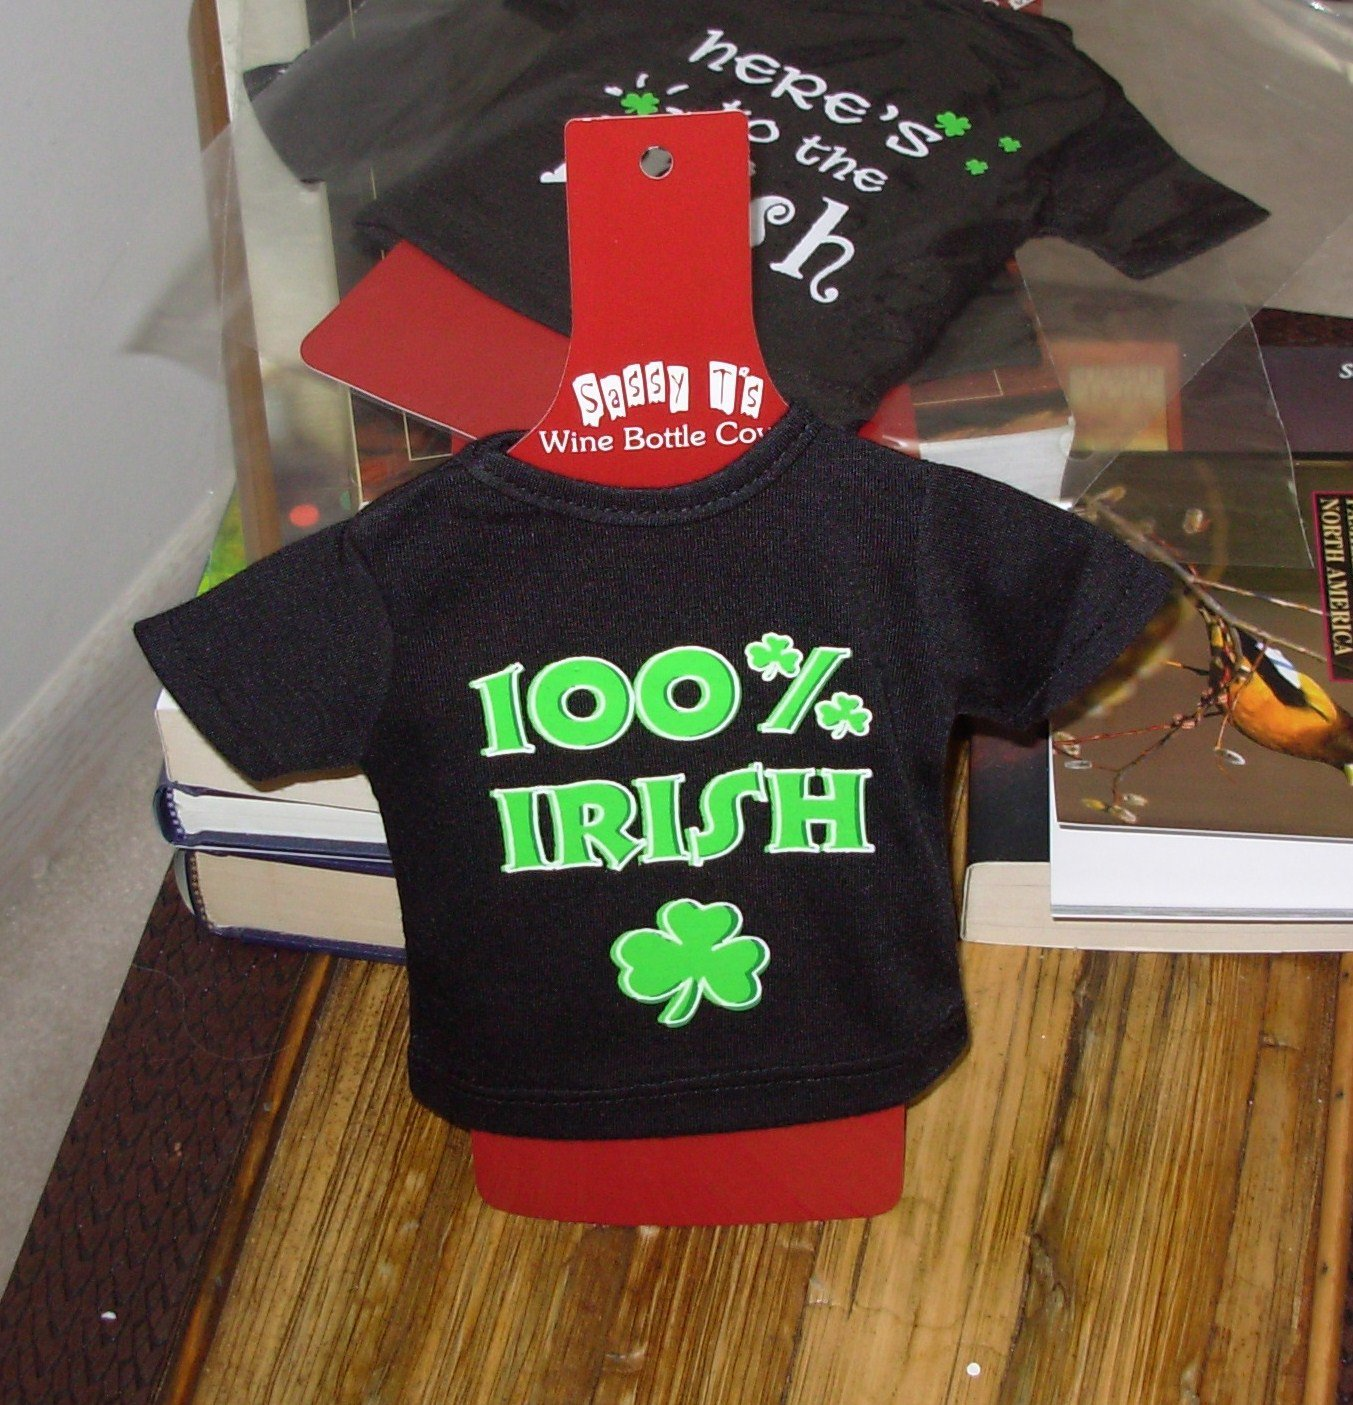 IRISH SASSY TEES WINE BOTTLE COVERS SAYS 100% IRISH NEW GANZ BAR HOME GIFT